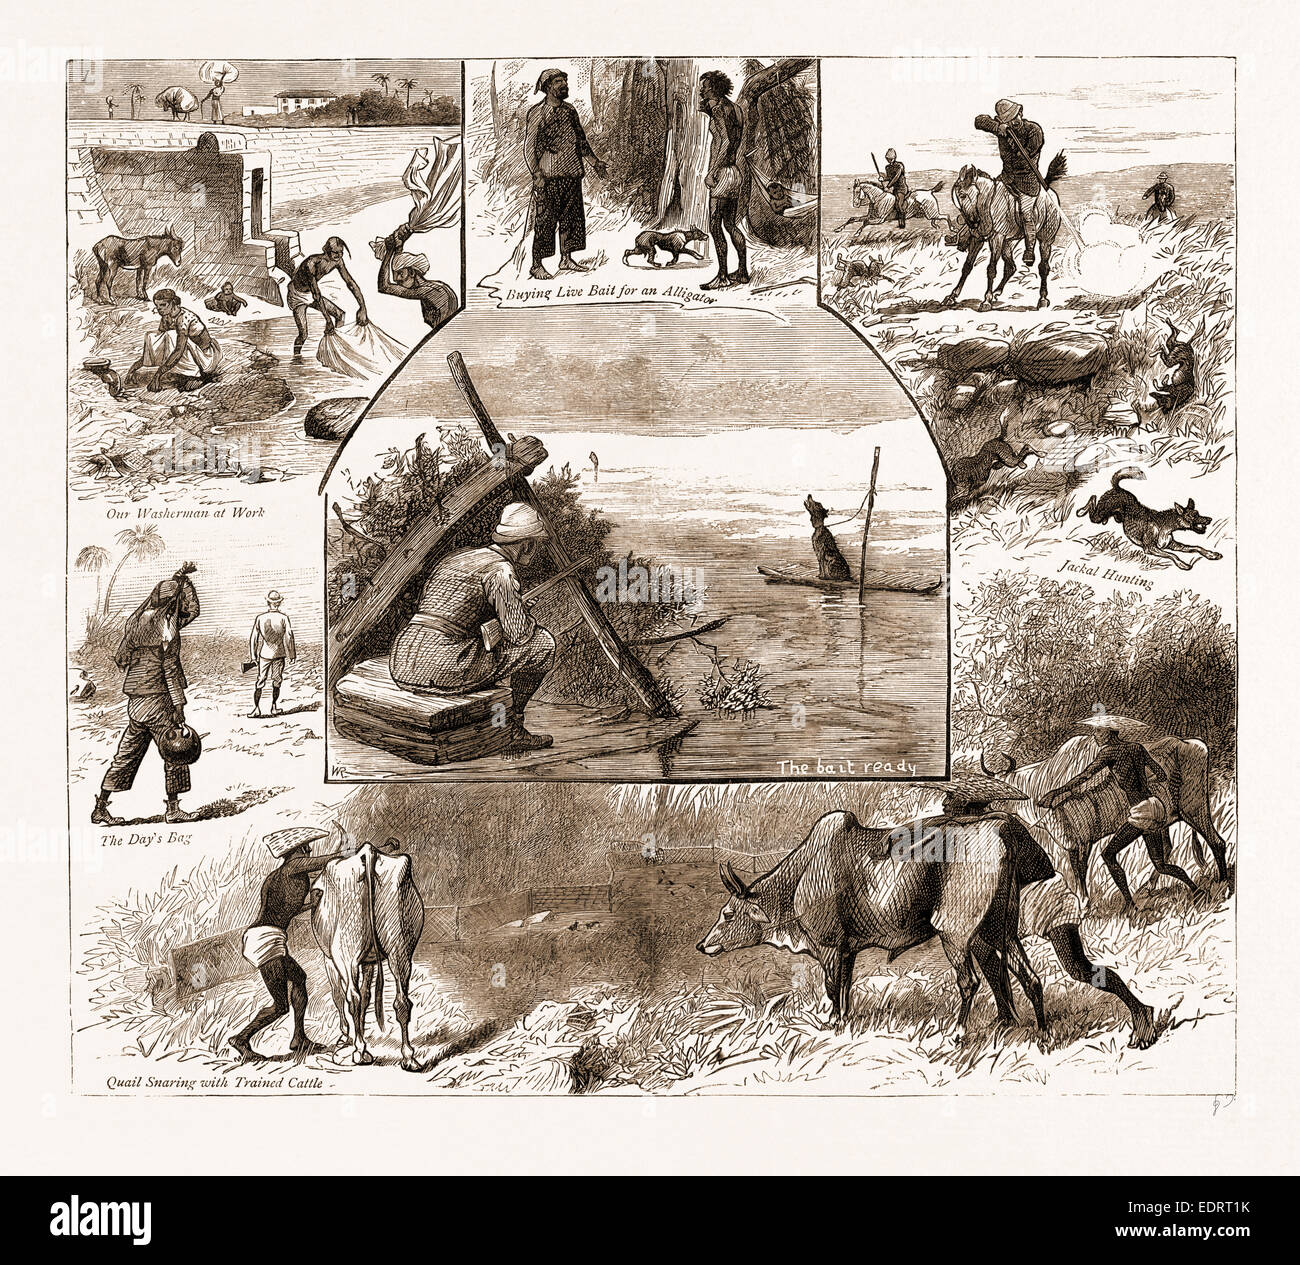 SOME INDIAN SPORTING NOTES, 1883; The bait ready, Quail Snaring with Trained Cattle, Jackal Hunting, Washerman at - Stock Image